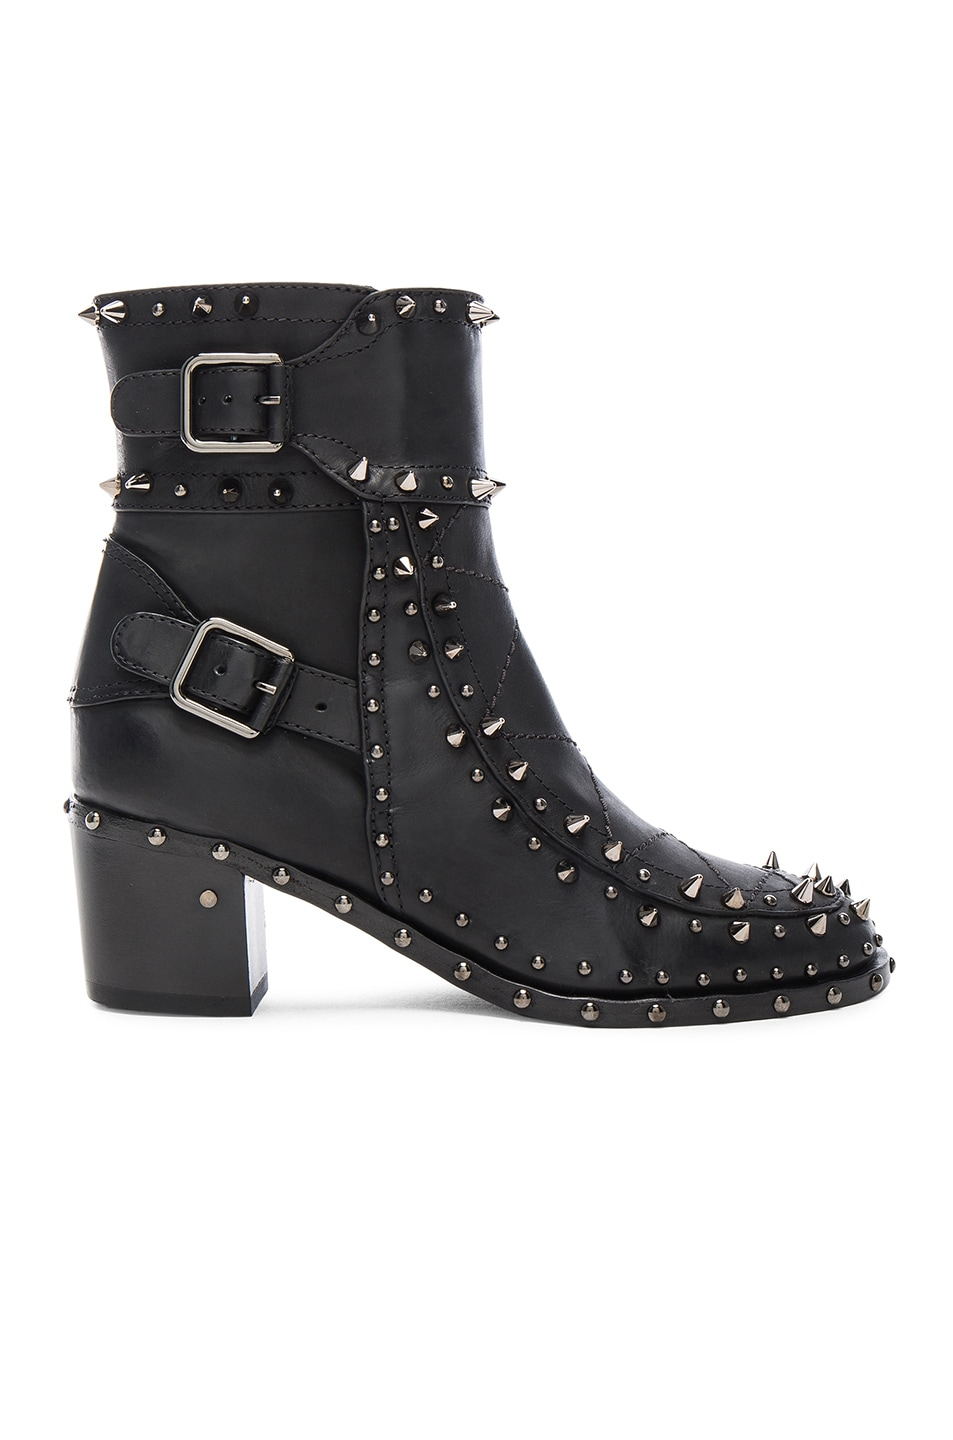 Image 1 of Laurence Dacade Badely Leather Boots in Black & Rutenium